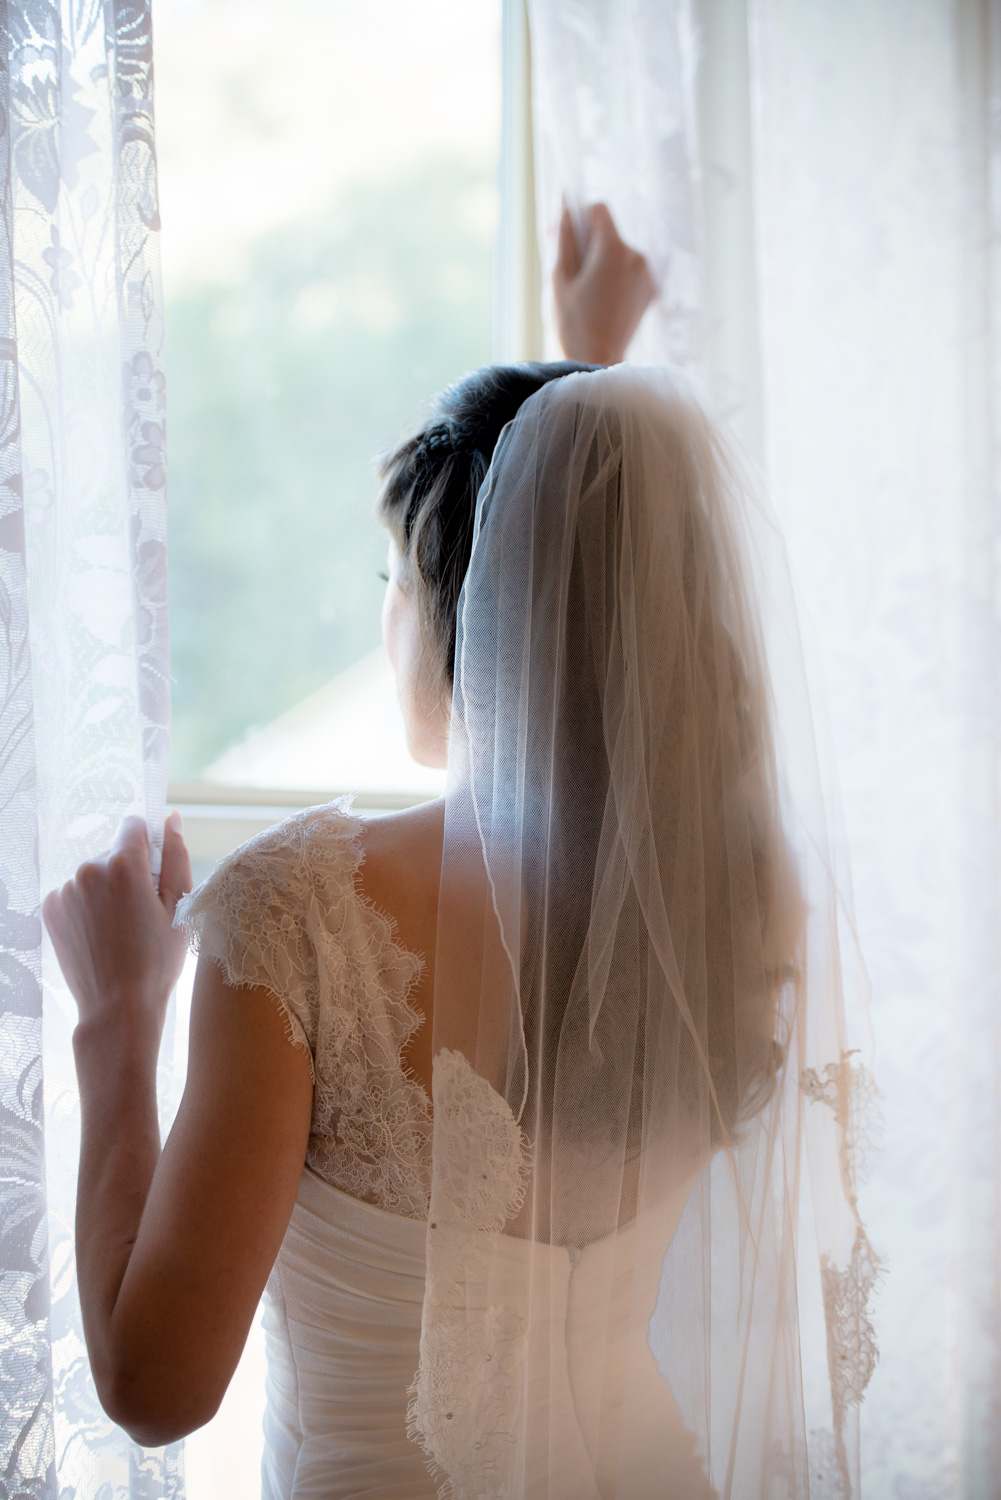 Bride at the window - It was a perfect opportunity when she was looking for someone outside, so you think. Nah we just asked her to pose:)